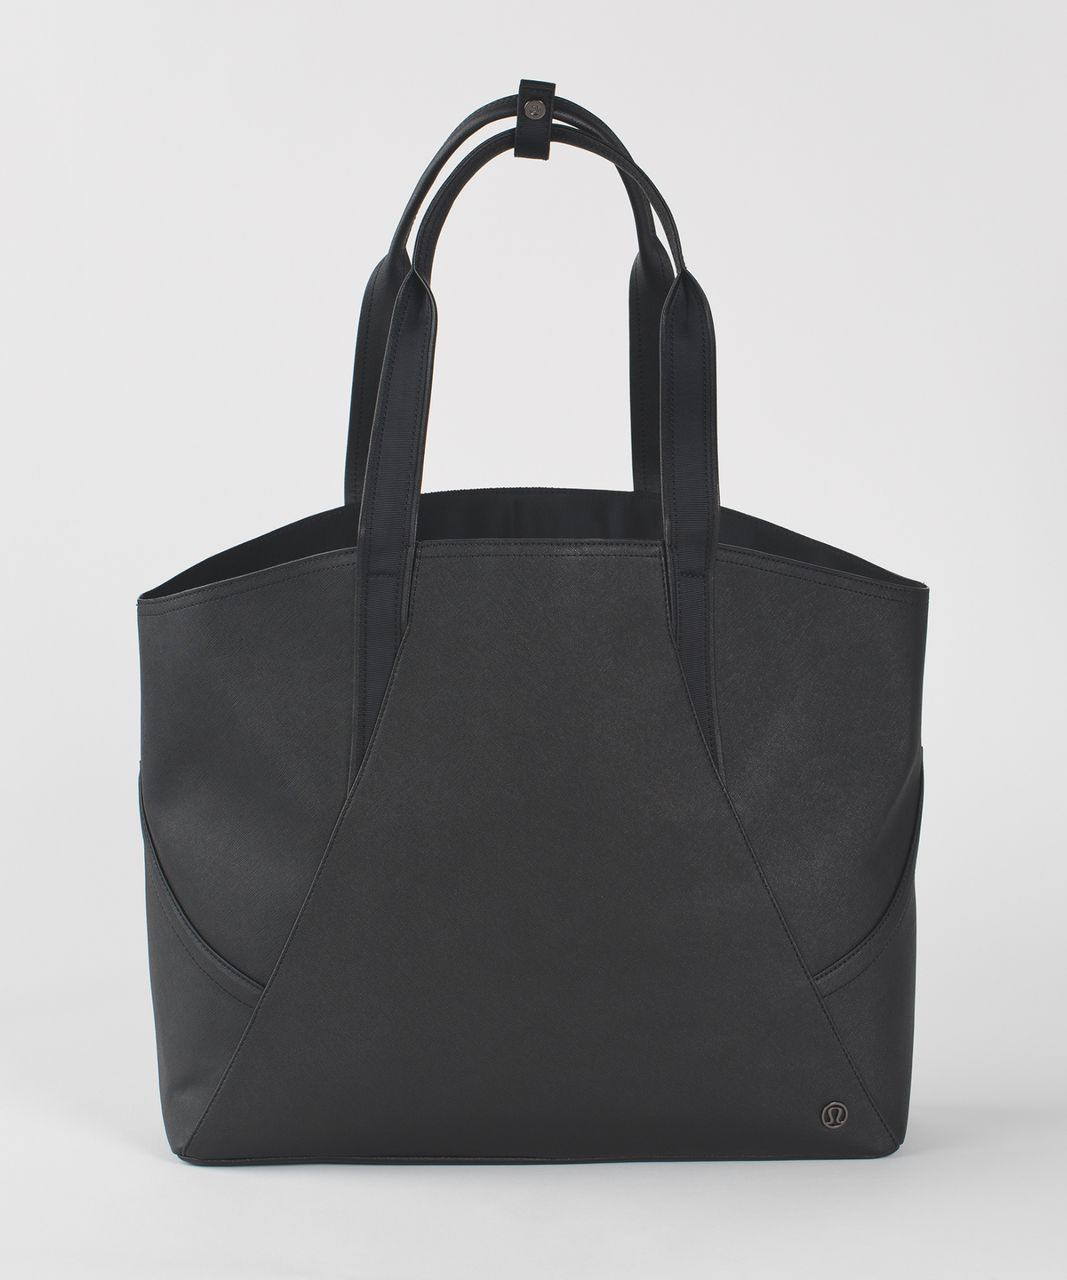 d3307d1064 Lululemon All Day Tote - Black - lulu fanatics